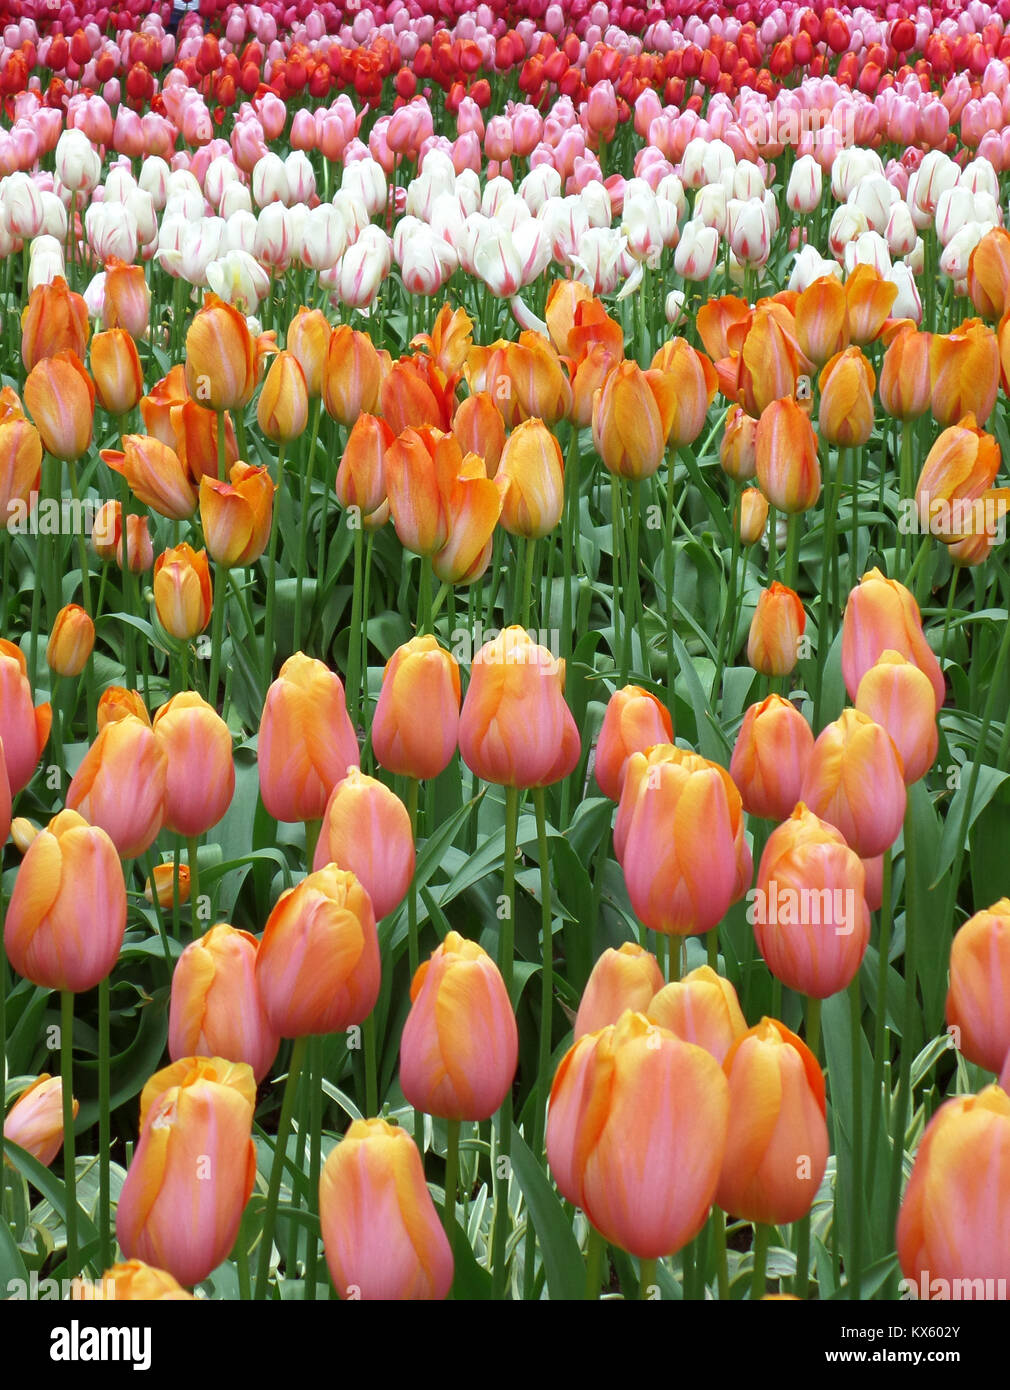 Blooming Colorful Two-Tone Tulip Flowers Field in Keukenhof, The Netherlands - Stock Image